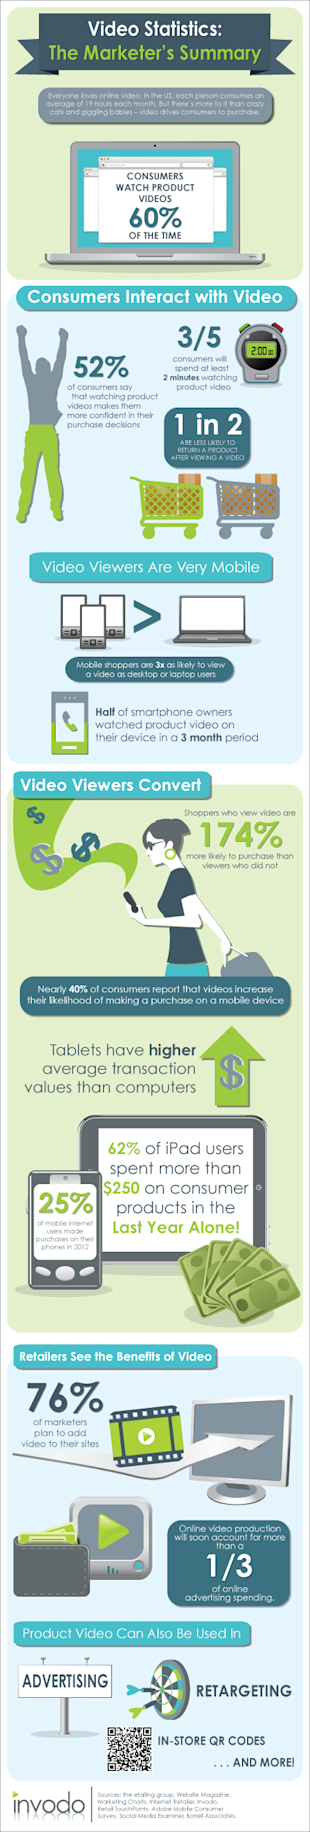 Video Statistics: The Marketers Infographic image VideoStats Infographic